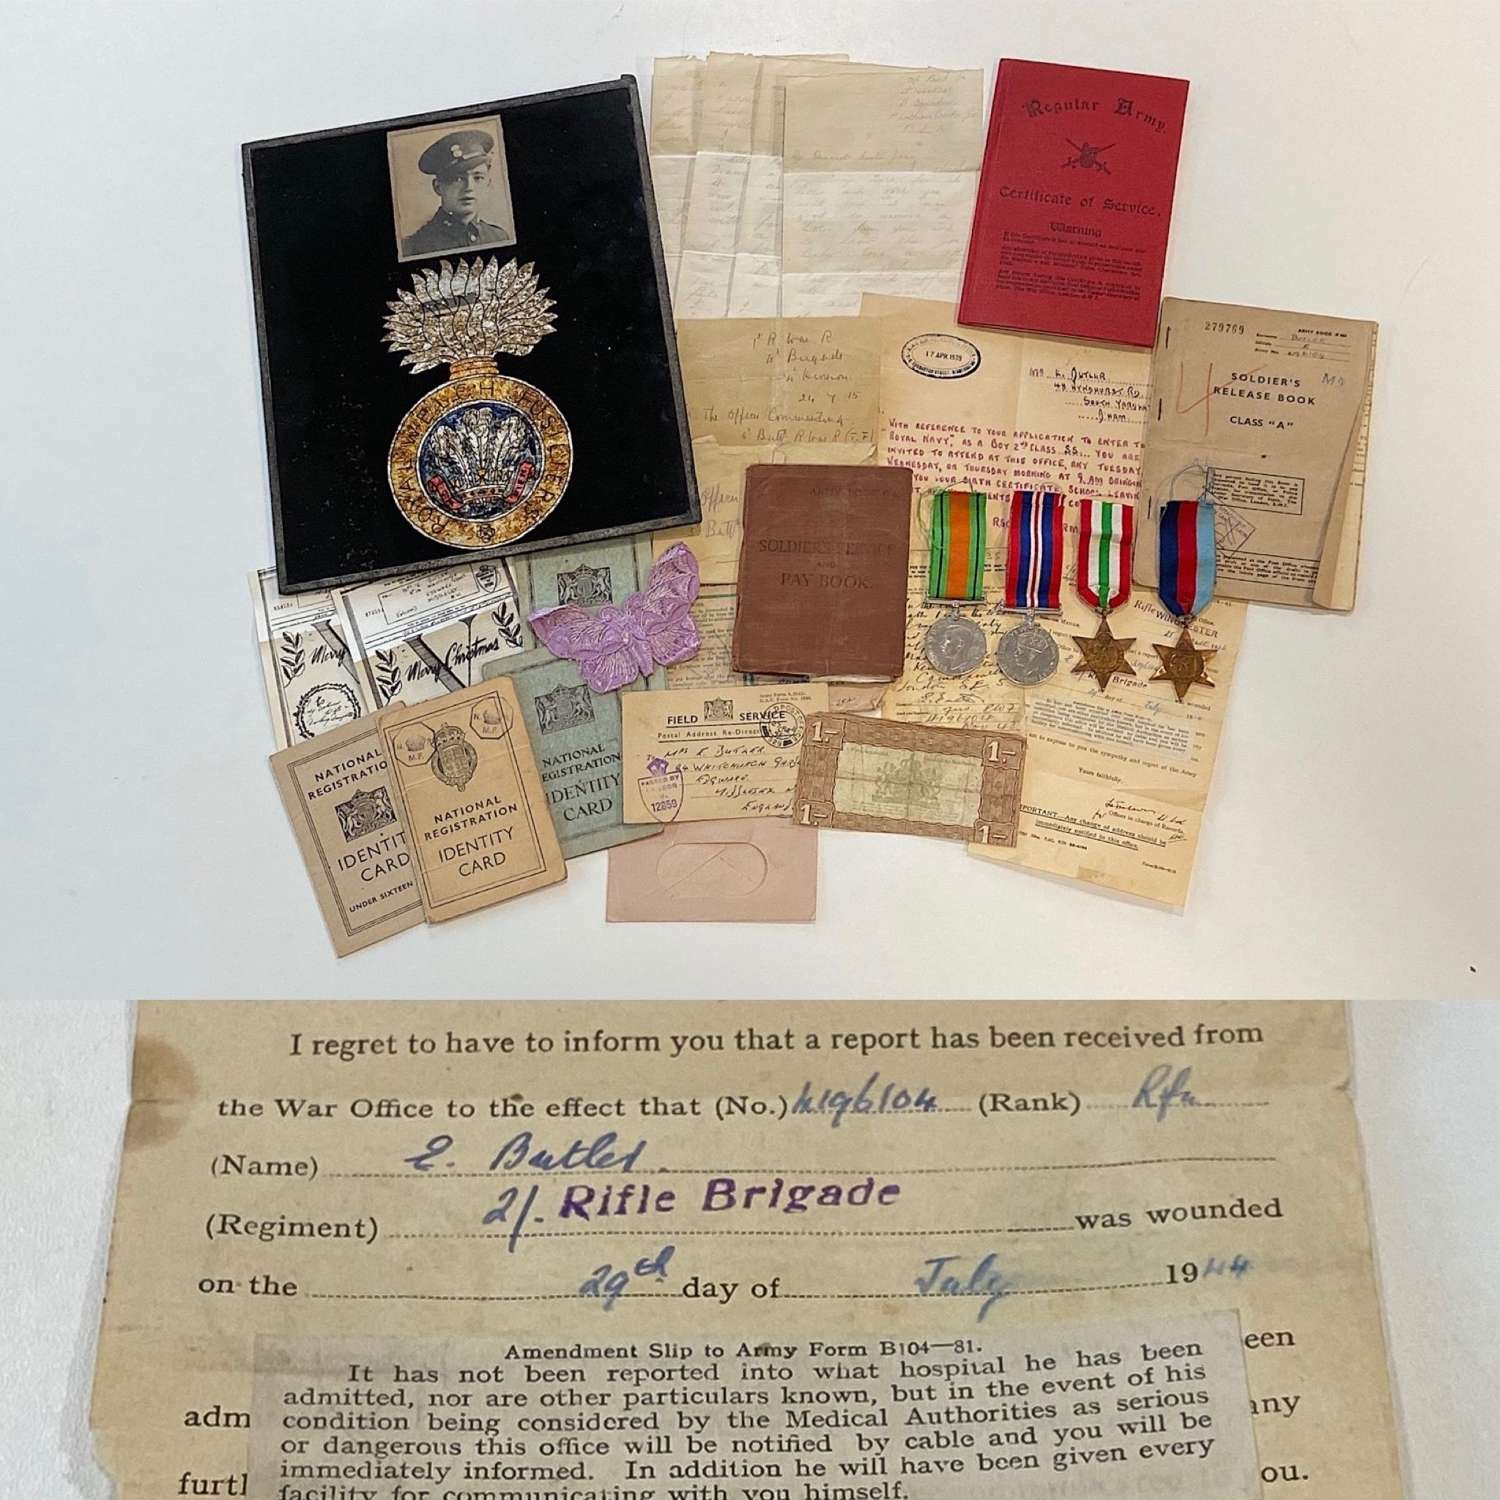 WW2 Medal Group Royal Welch Fusiliers PTE BUTLER WOUNDED ARNO LINE